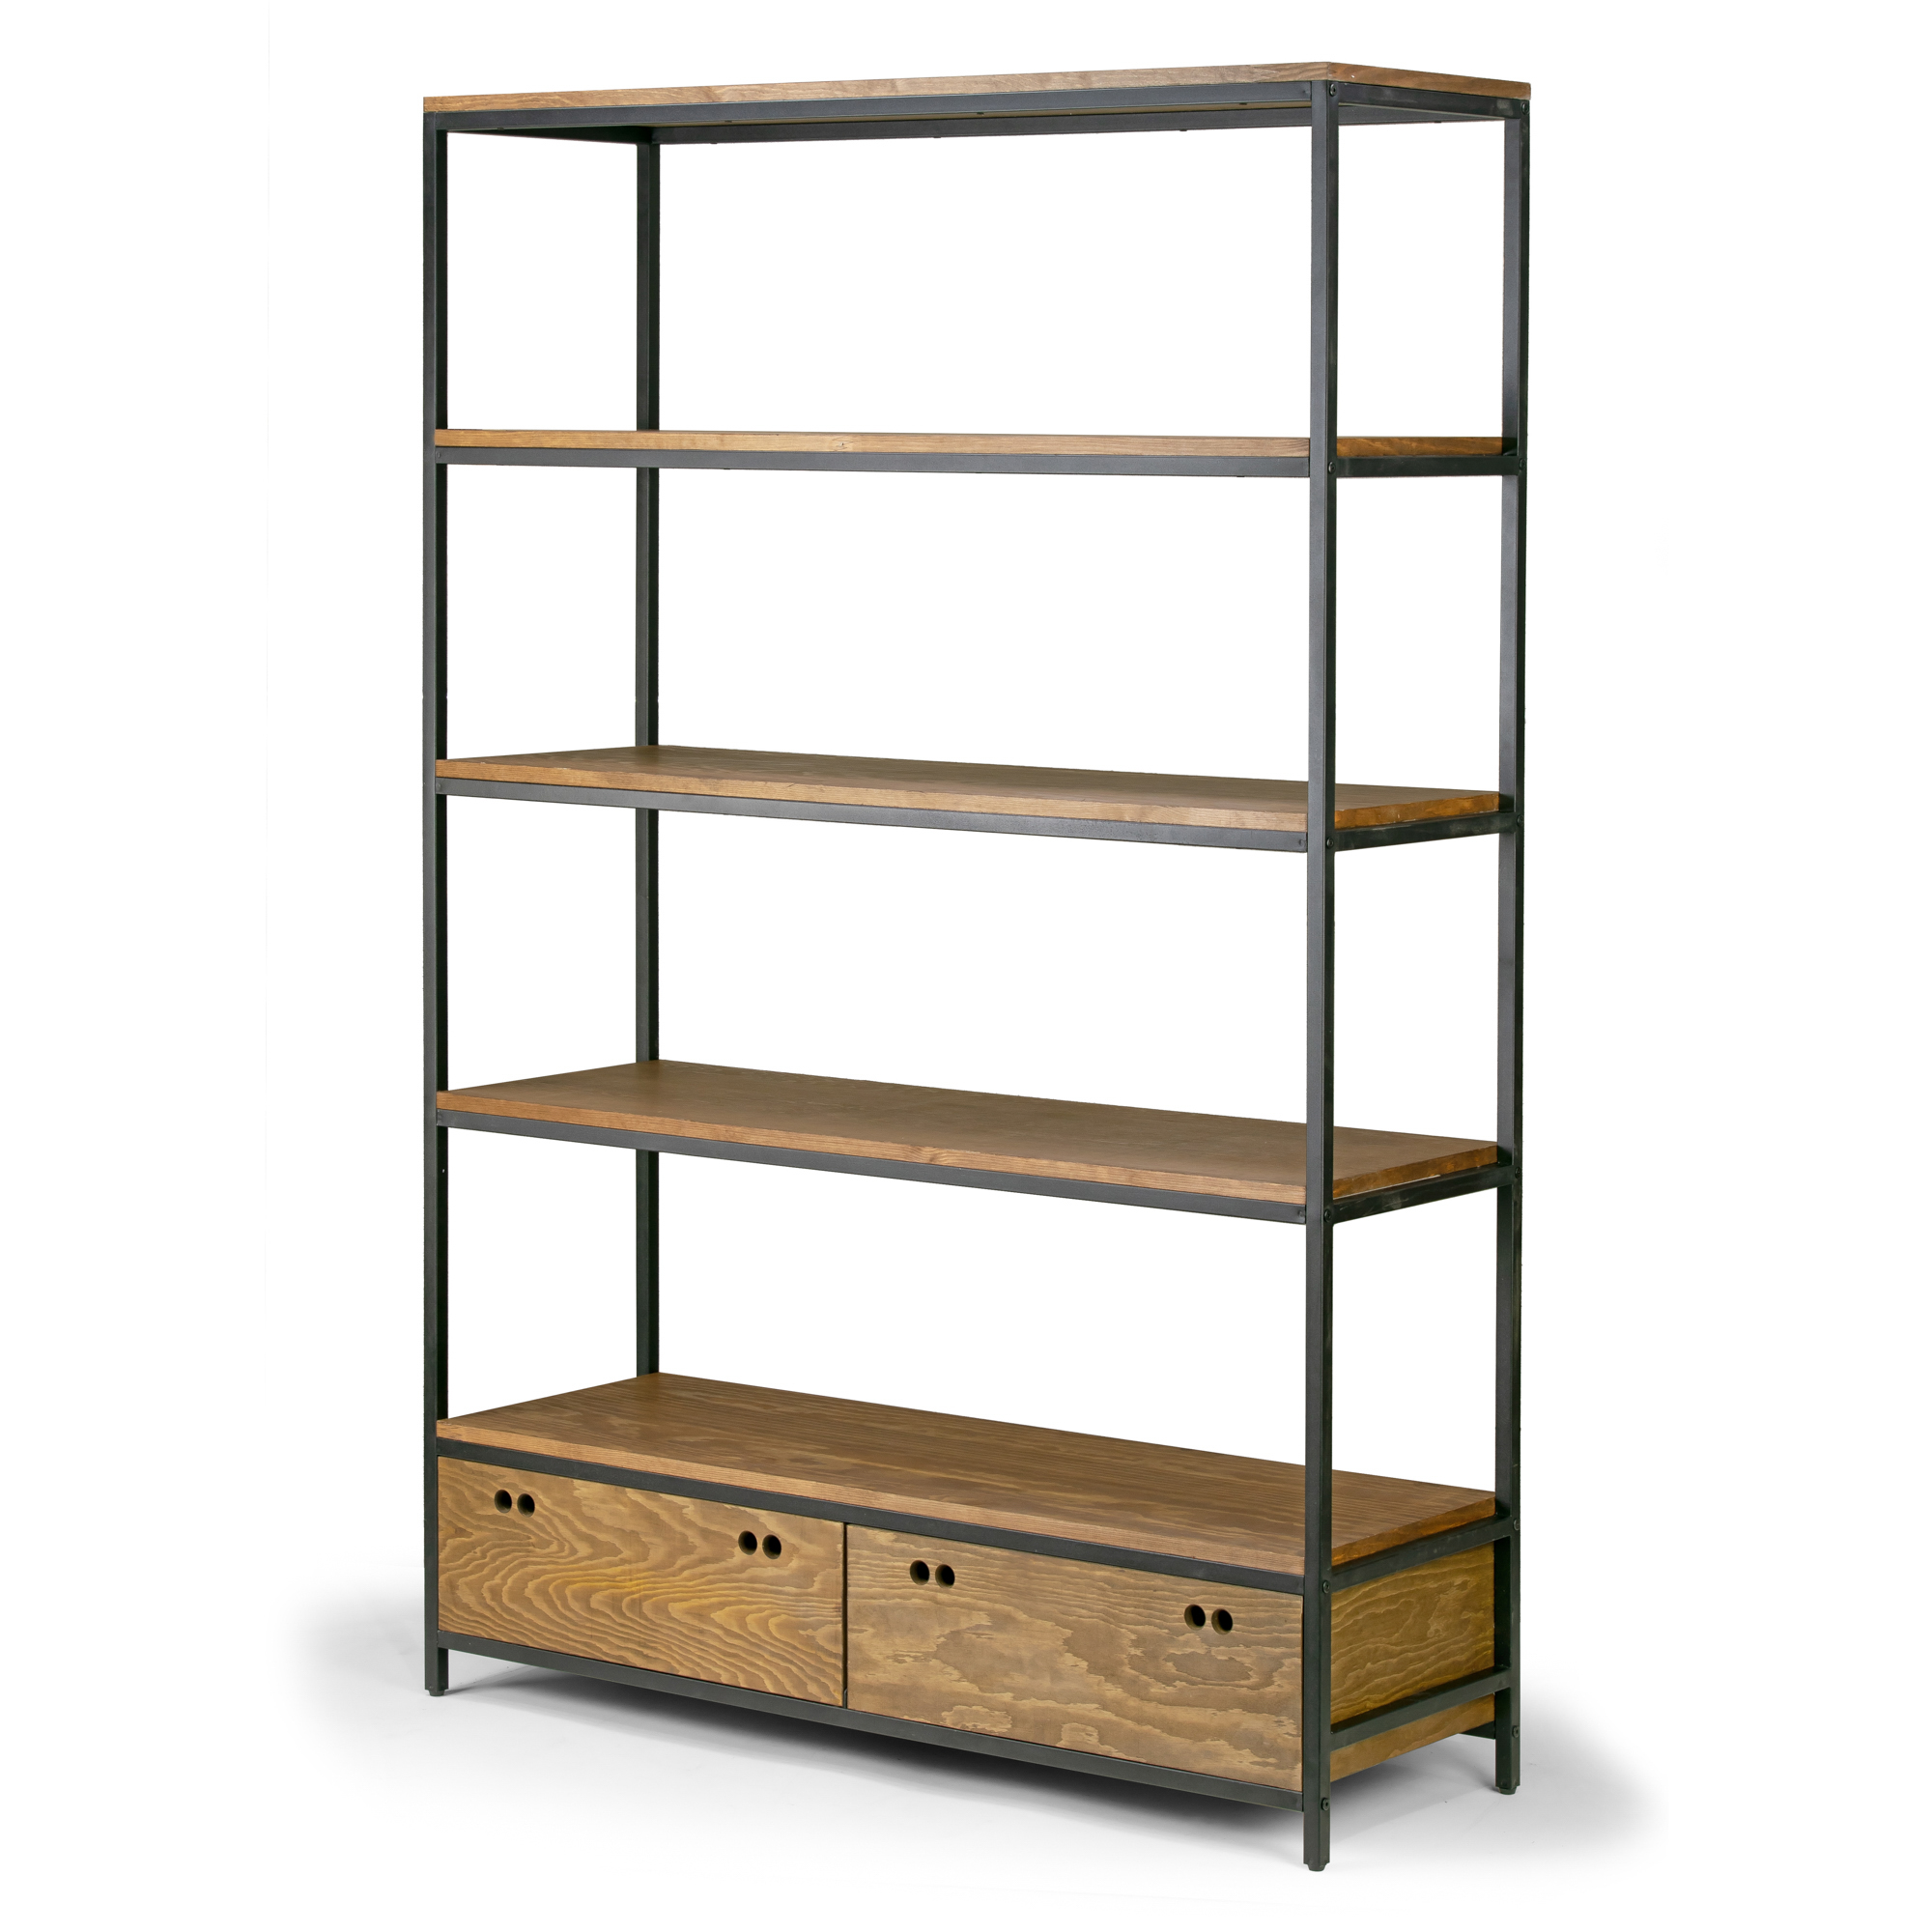 Alta Brown Pine Wood Display Shelf Etagere Metal Frame Bookcase with Drawers